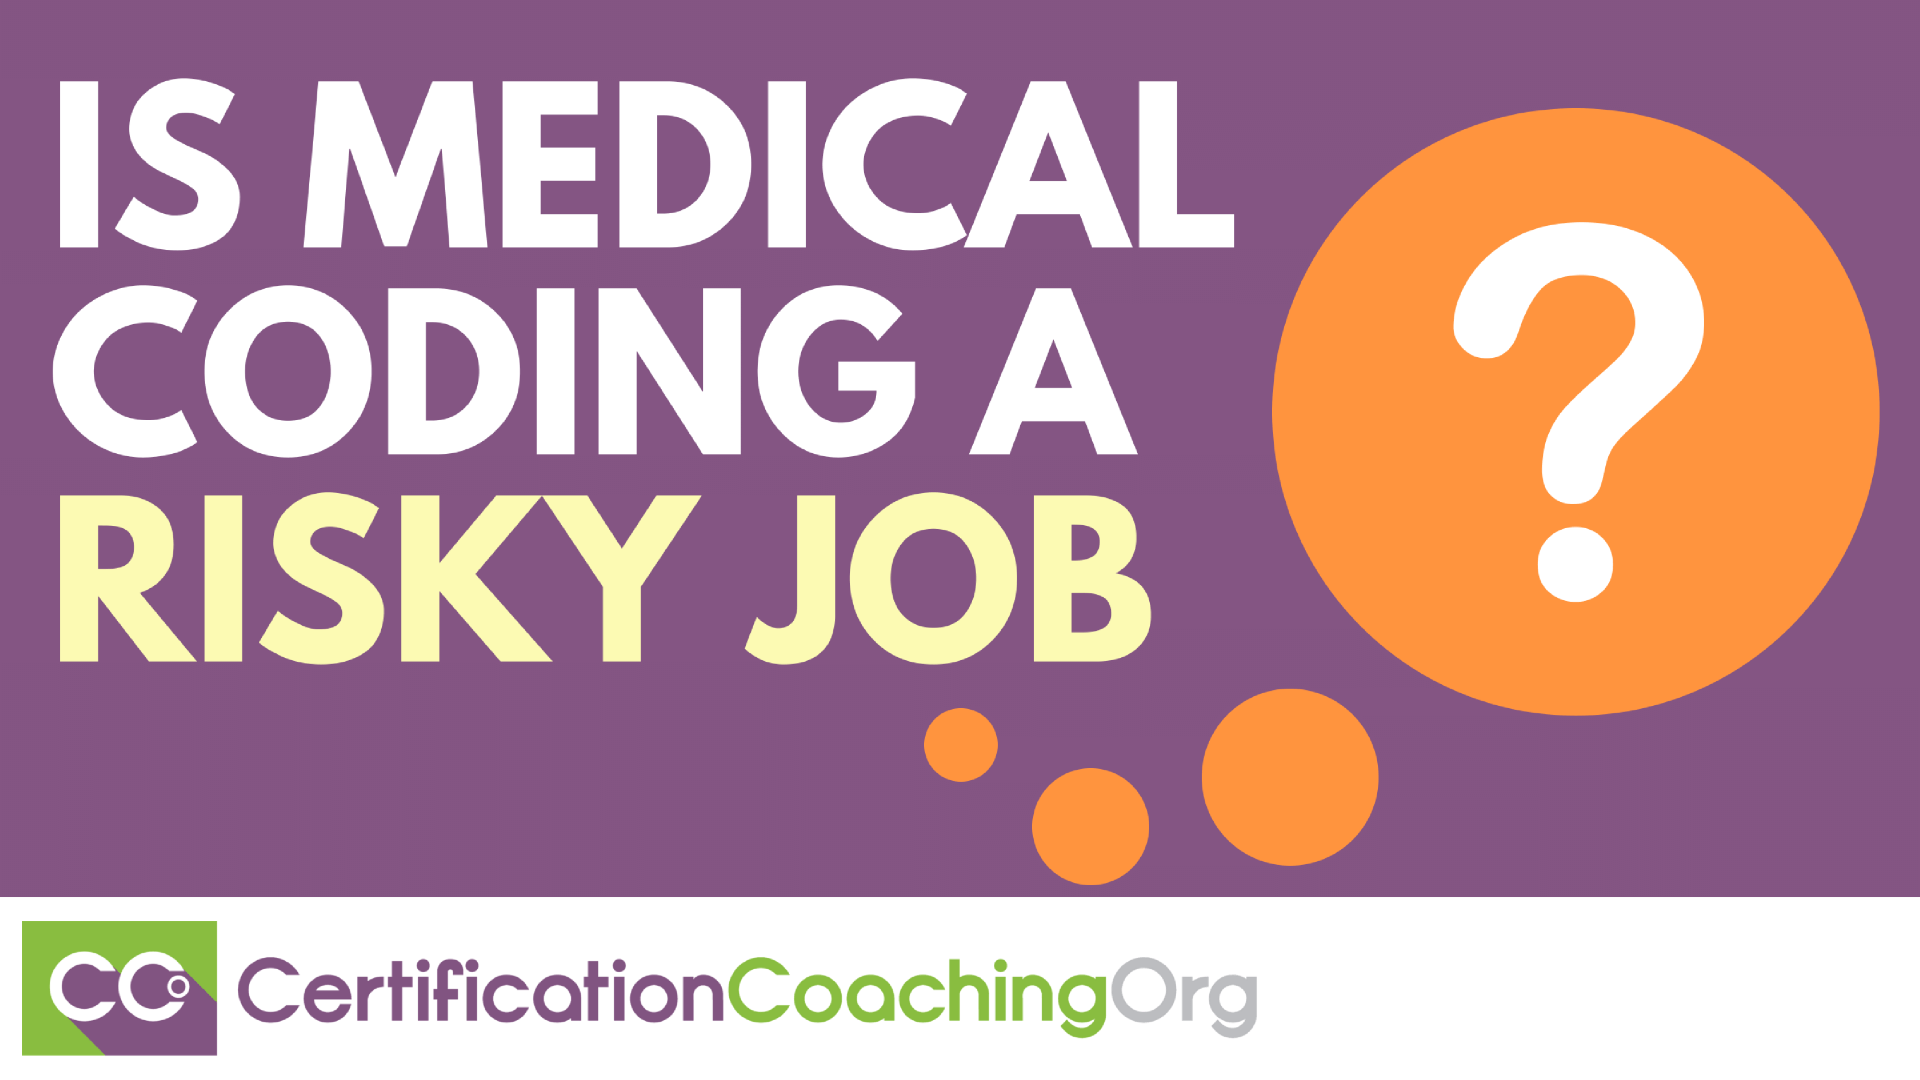 Is Medical Coding a Risky Job